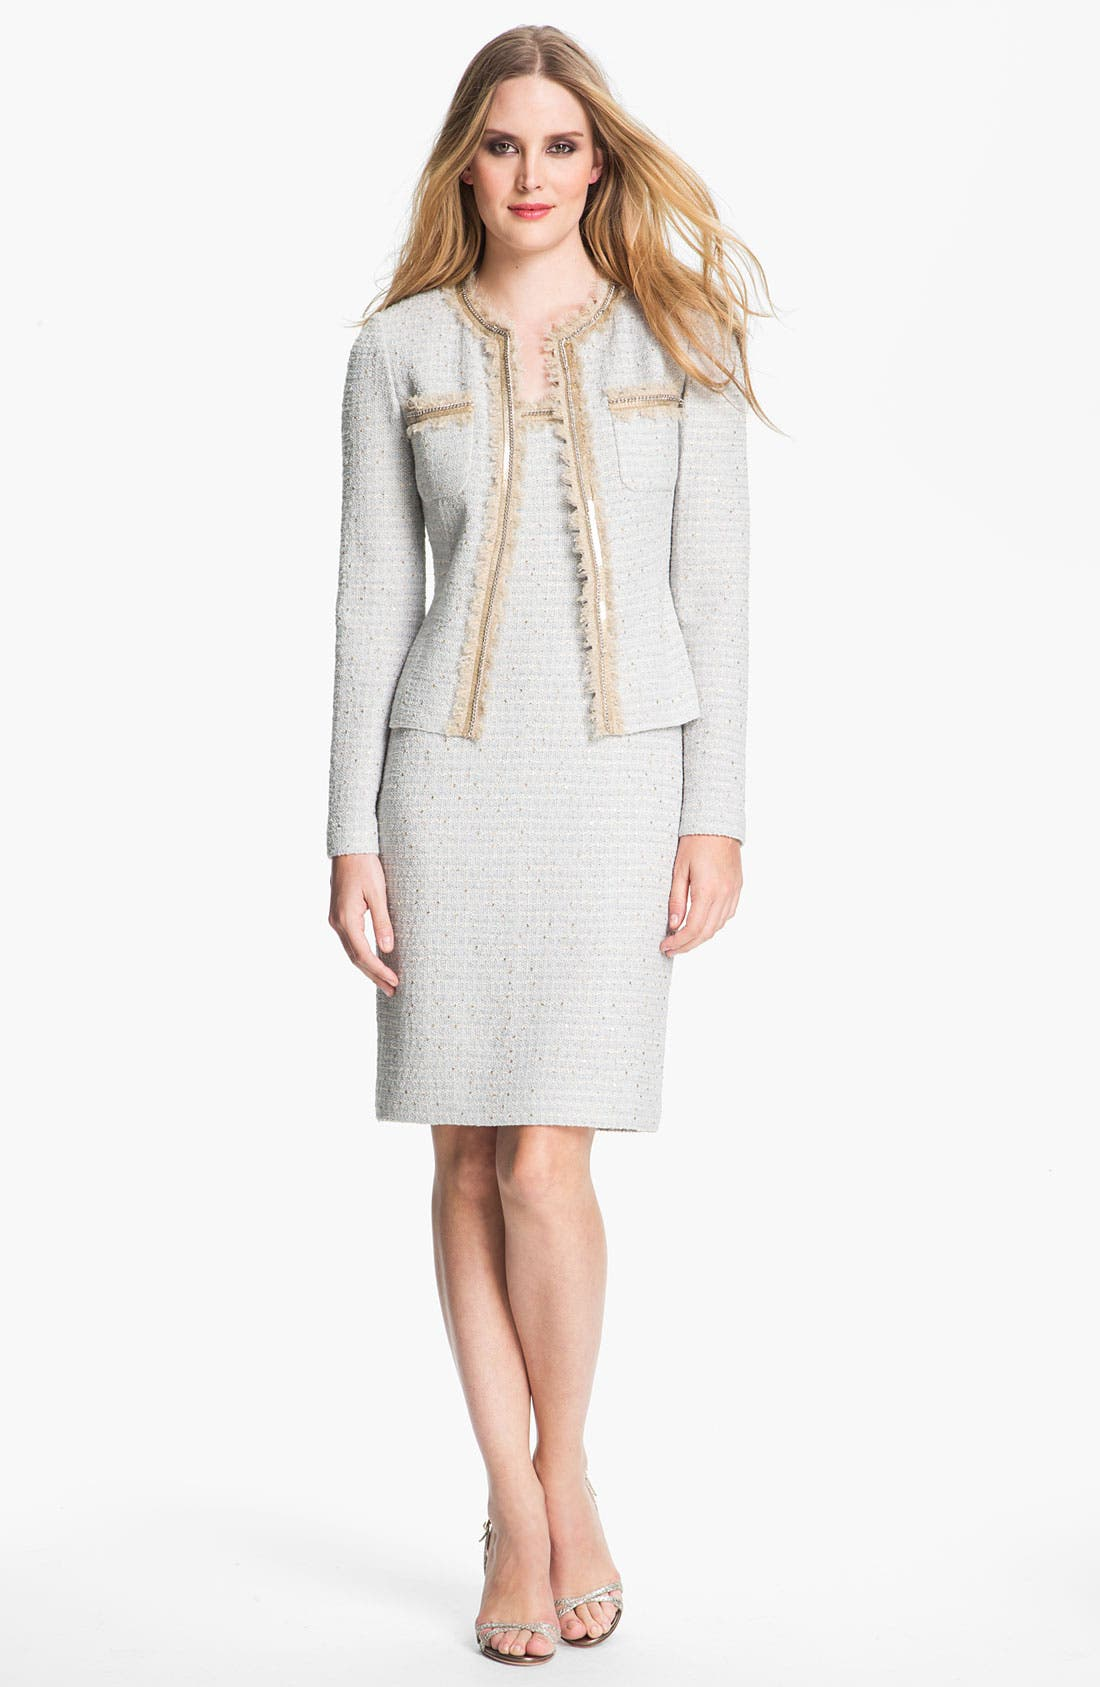 Alternate Image 1 Selected - St. John Collection Sequin Ice Tweed Knit Jacket